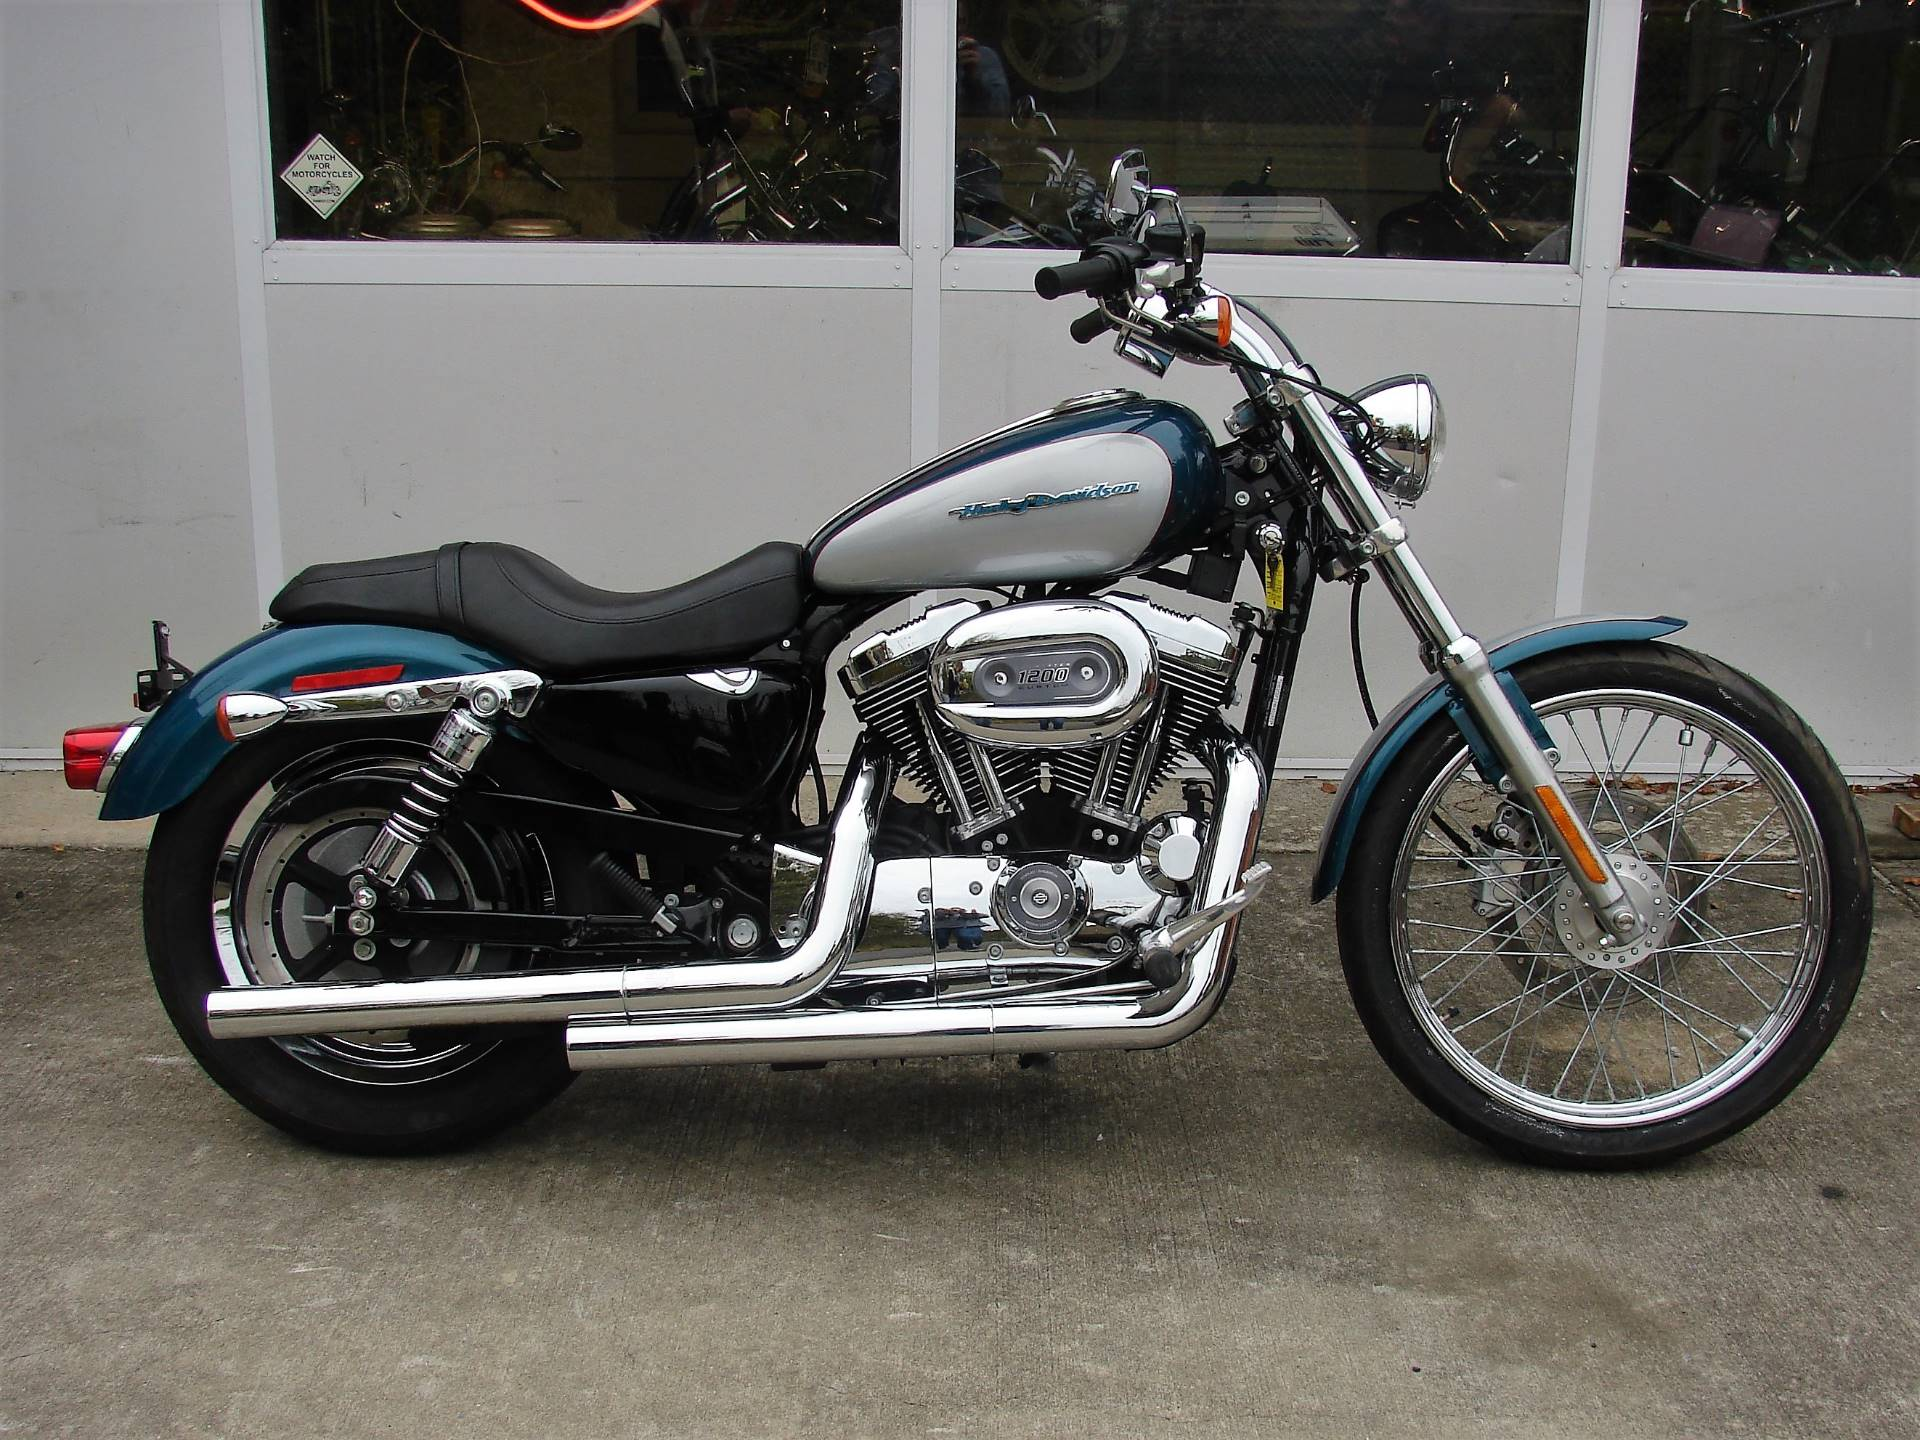 2004 Harley-Davidson Sportster XL 1200 Custom in Williamstown, New Jersey - Photo 1